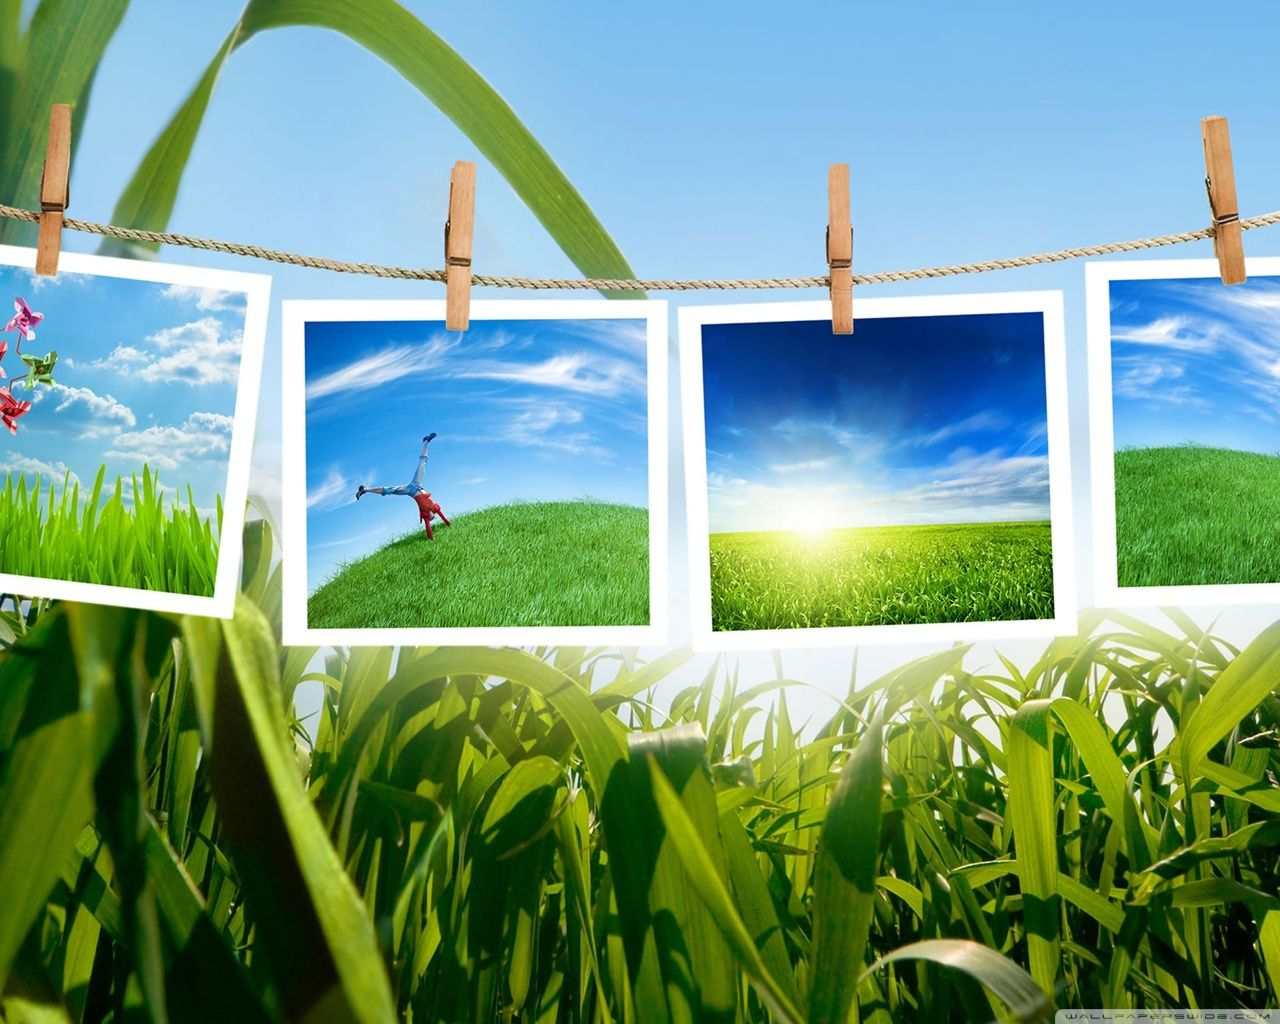 Green Laptop Collage Wallpapers - Wallpaper Cave